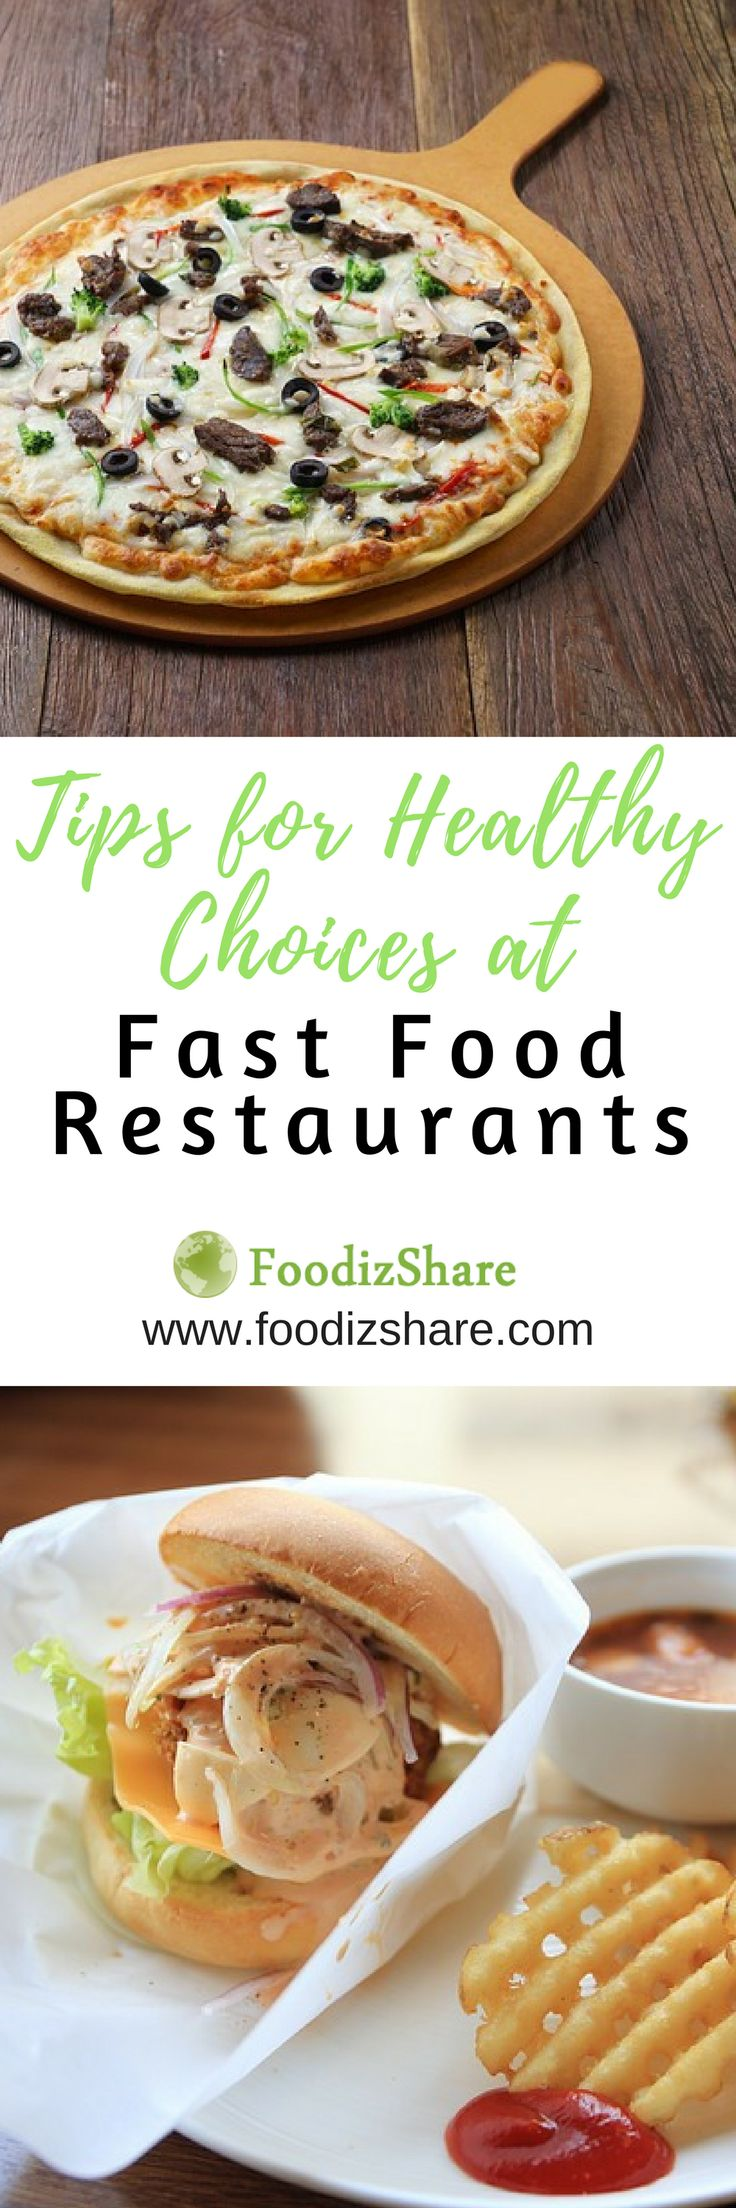 The following tips and menu recommendations can help you make healthier choices at fast food restaurants. Just remember that even the healthiest fast food options often have nutritional drawbacks so try to keep fast food to the occasional treat.